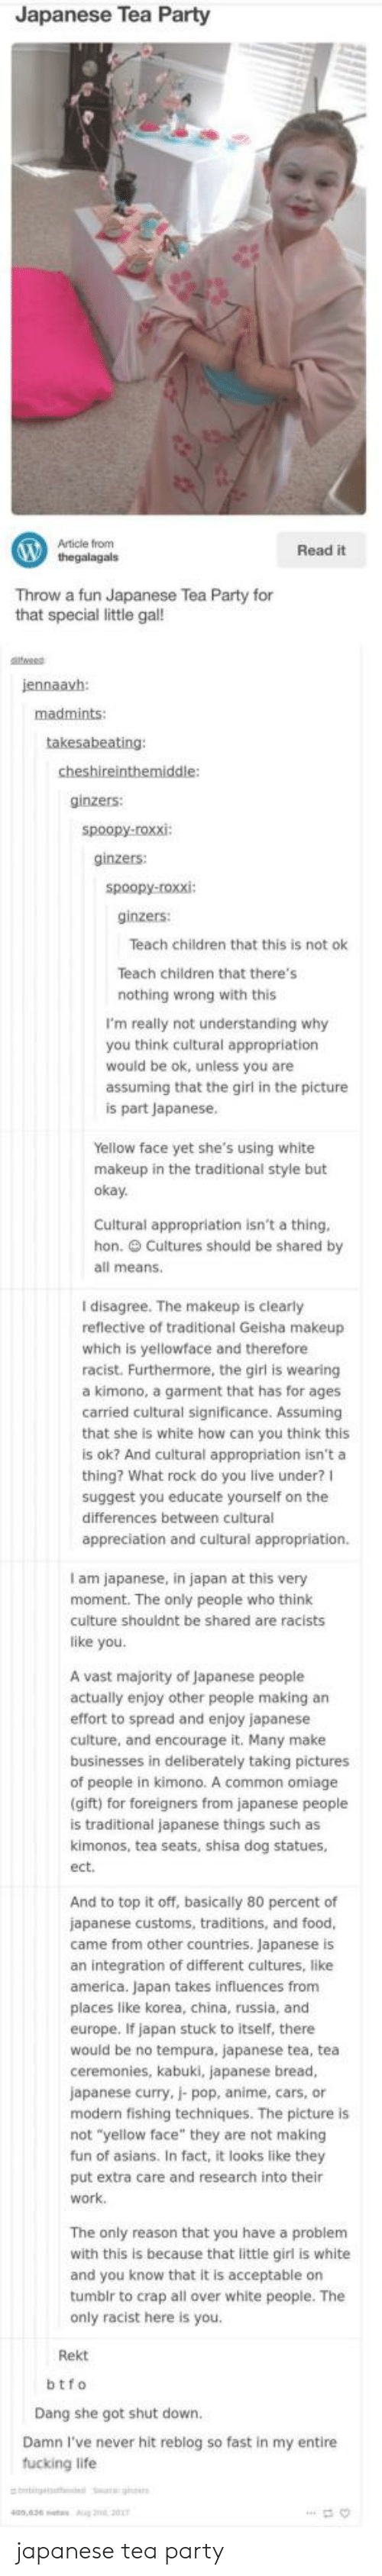 """kimono: Japanese Tea Party  Article from  thegalagals  Read it  Throw a  Throw a fun Japanese Tea Party for  that special little gal!  jennaavh  ginzers:  ginzers:  ginzers:  Teach children that this is not ok  Teach children that there's  nothing wrong with this  I'm really not understanding why  you think cultural appropriatiorn  would be ok, unless you are  assuming that the girl in the picture  is part Japanese  Yellow face yet she's using white  makeu  p in the traditional style but  oka  Cultural appropriation isn't a thing  hon. Cultures should be shared by  all means.  I disagree. The makeup is clearly  reflective of traditional Geisha makeup  which is yellowface and therefore  racist. Furthermore, the girl is wearing  a kimono, a garment that has for ages  carried cultural significance. Assuming  that she is white how can you think this  is ok? And cultural appropriation isn't a  thing? What rock do you live under?I  suggest you educate yourself on the  differences between cultural  appreciation and cultural appropriation.  I am japanese, in japan at this very  moment. The only people who think  culture shouldnt be shared are racists  like you.  A vast majority of Japanese people  actually enjoy other people making an  effort to spread and enjoy japanese  culture, and encourage it. Many make  businesses in deliberately taking pictures  of people in kimono. A common omiage  gift) for foreigners from japanese people  is traditional japanese things such as  kimonos, tea seats, shisa dog statues,  ect  And to top it off, basically 80 percent of  japanese customs, traditions, and food  came from other countries. Japanese is  an integration of different cultures, like  america. Japan takes influences from  places like korea, china, russia, and  europe. If japan stuck to itself, there  would be no tempura, japanese tea, tea  ceremonies, kabuki, japanese bread,  japanese curry, j- pop, anime, cars, or  modern fishing techniques. The picture is  not """"yellow face"""" th"""